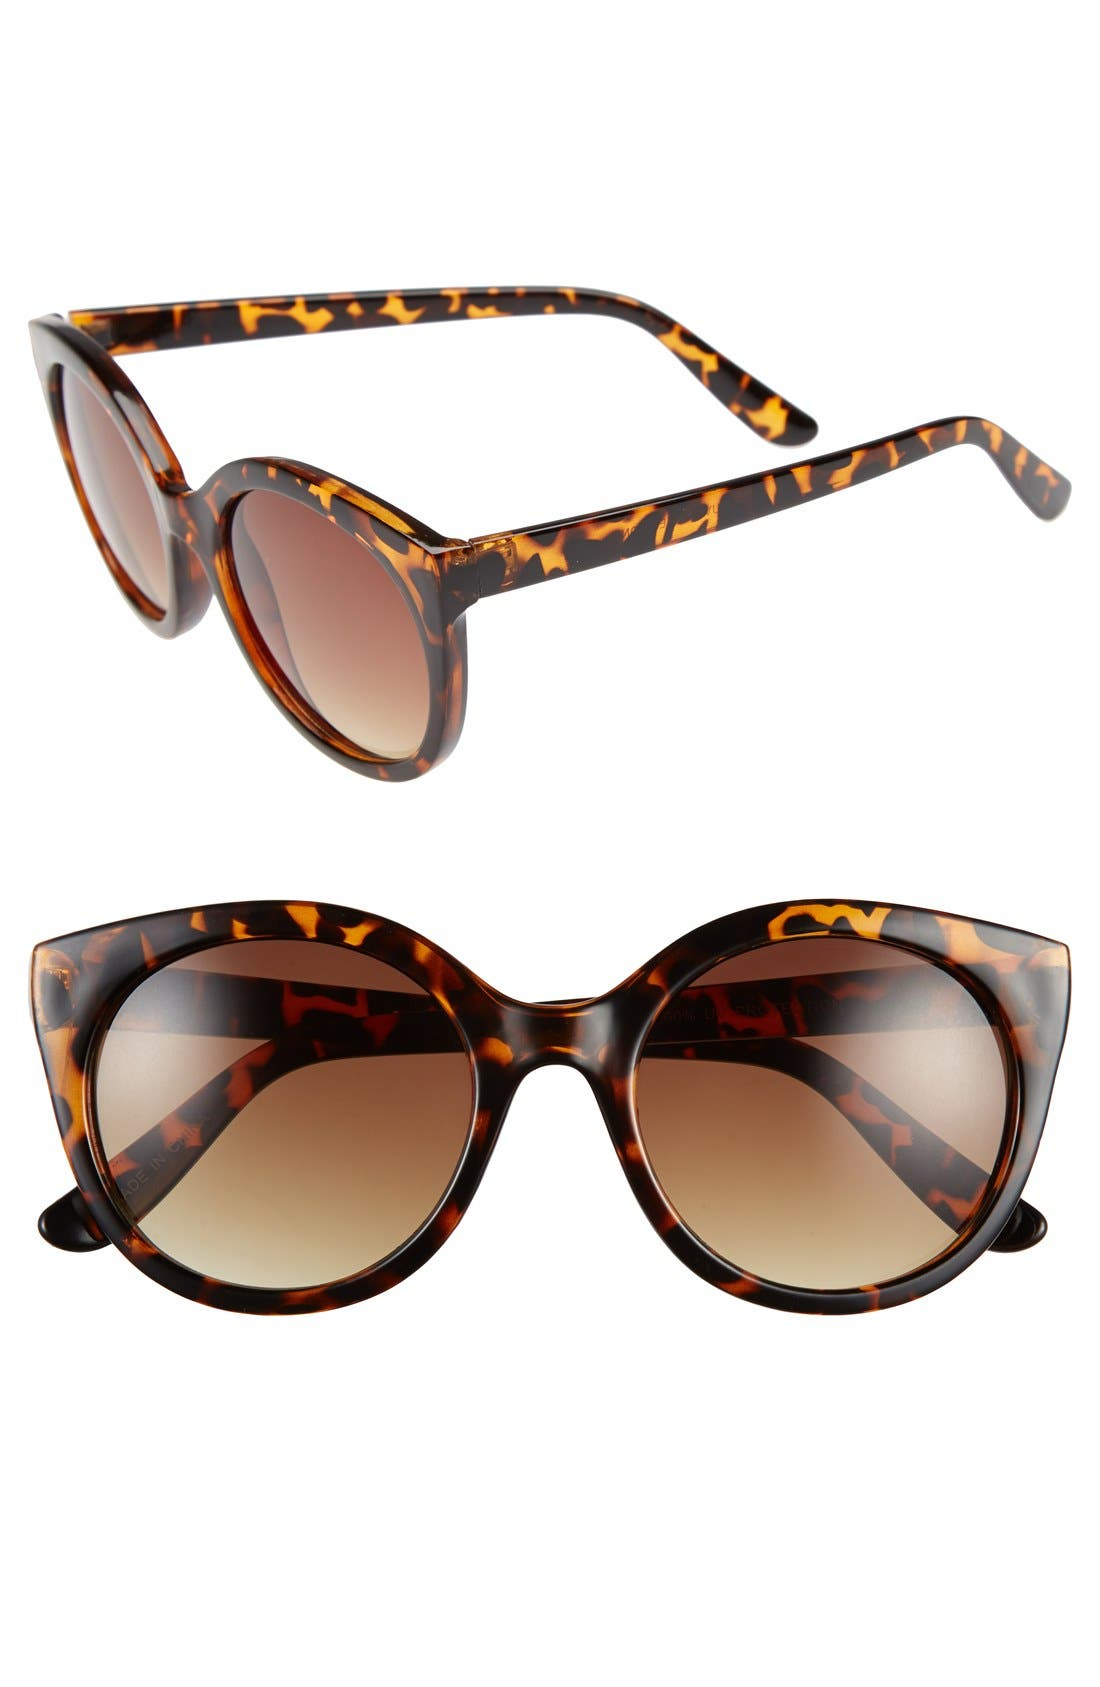 60mm Retro Sunglasses,                             Main thumbnail 1, color,                             Tort